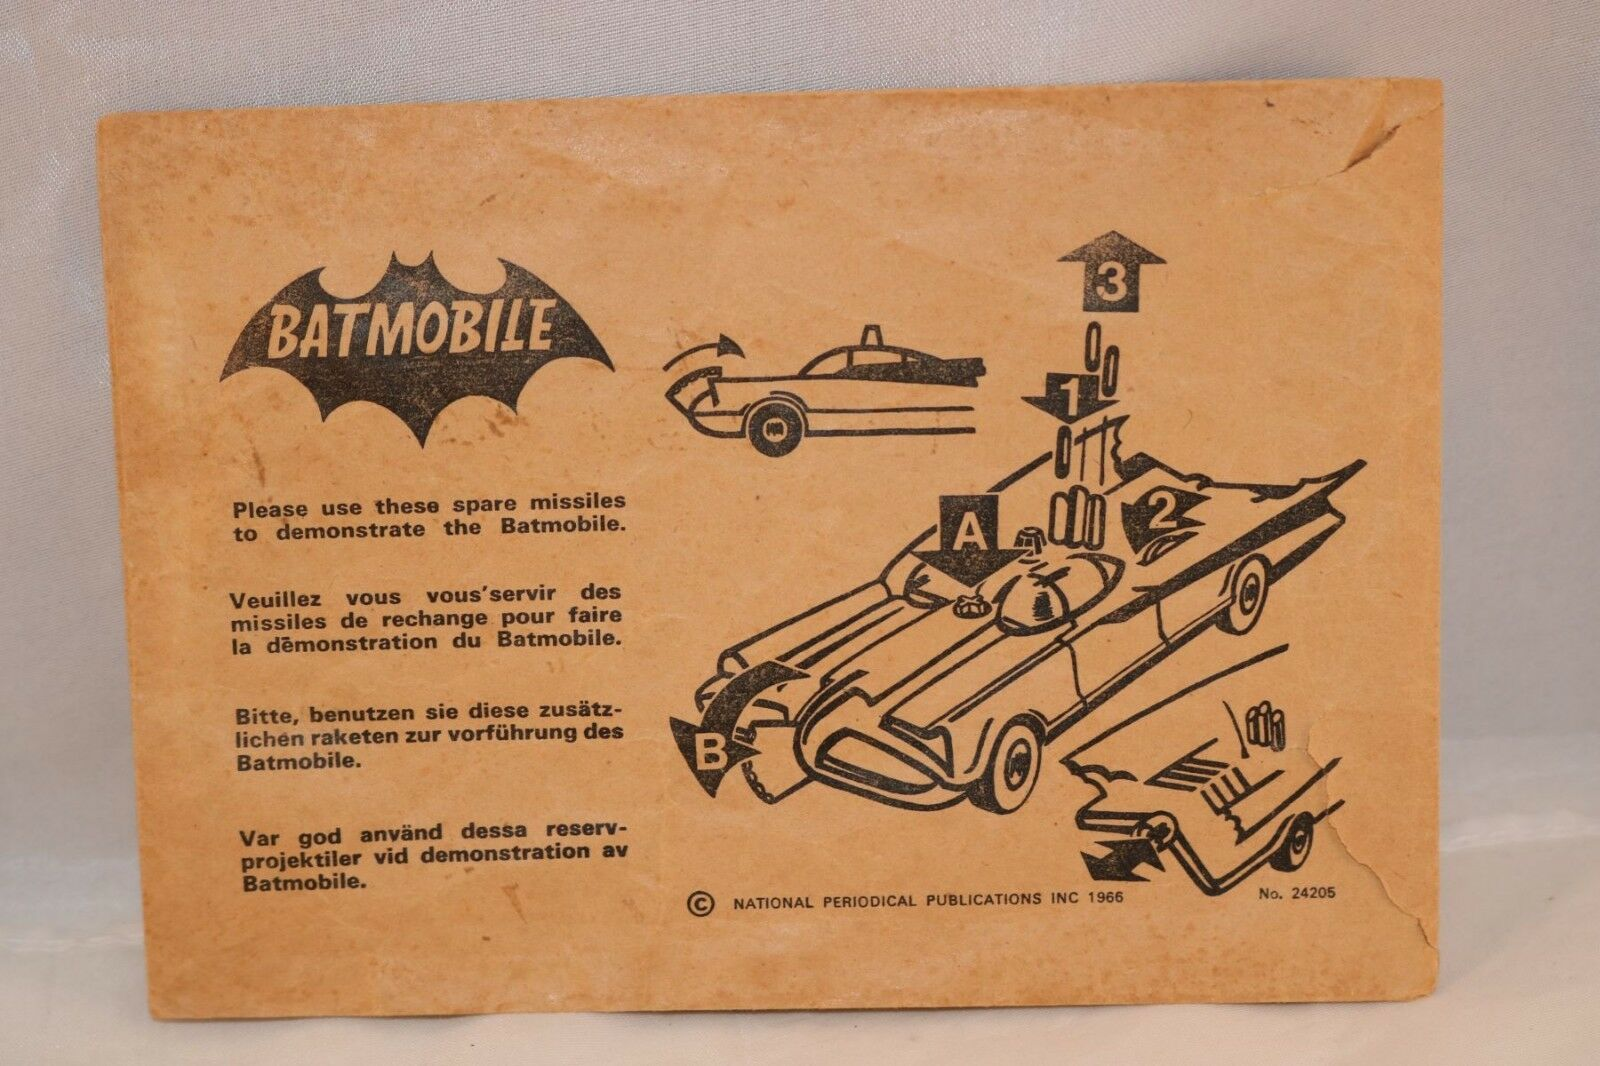 Corgi Toys 267 empty envelope for Batmobile spare missiles very scarce. 2